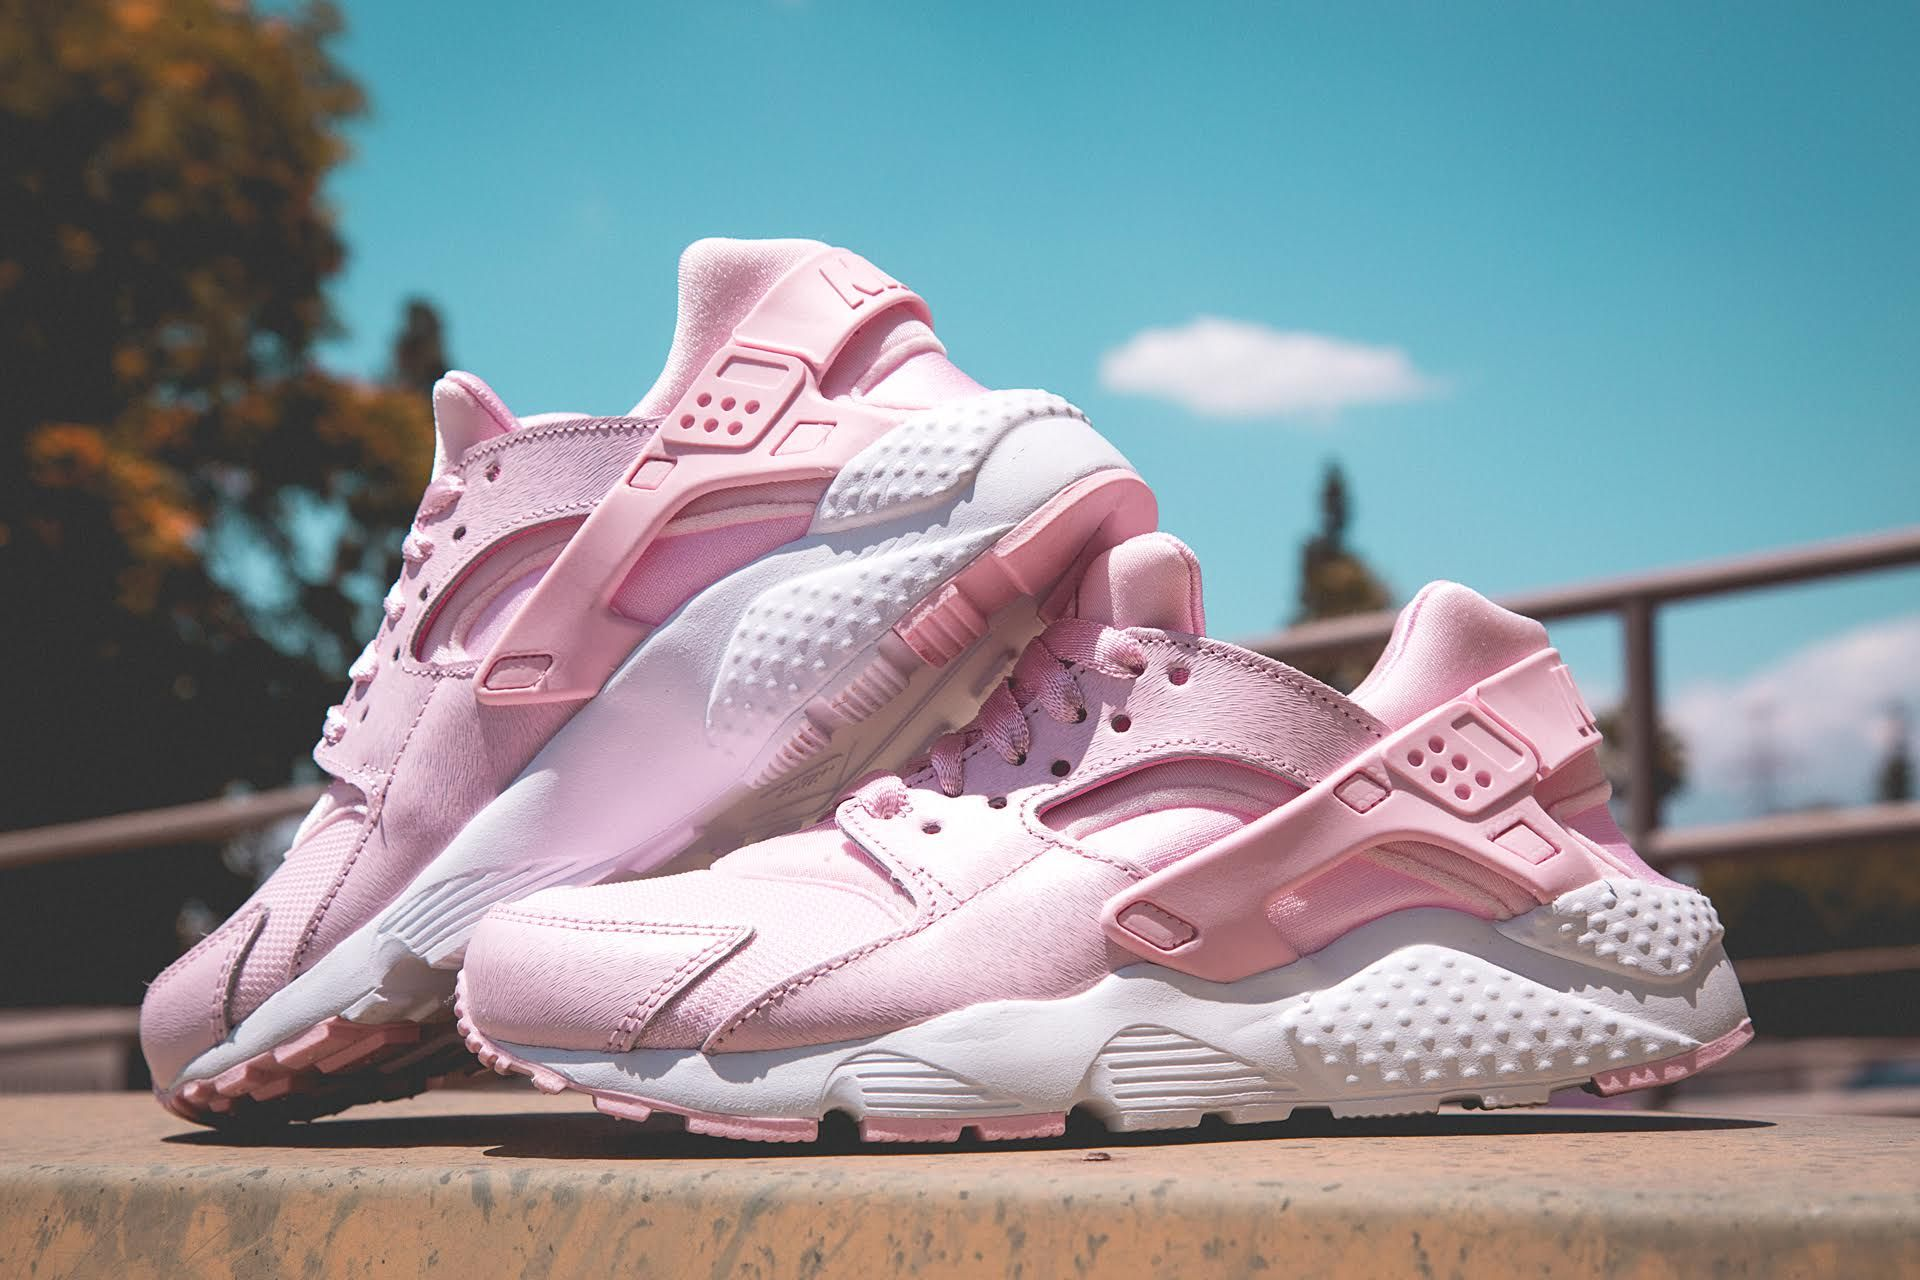 Nike Air Huarache in Baby Pink ,,@SHIEKH